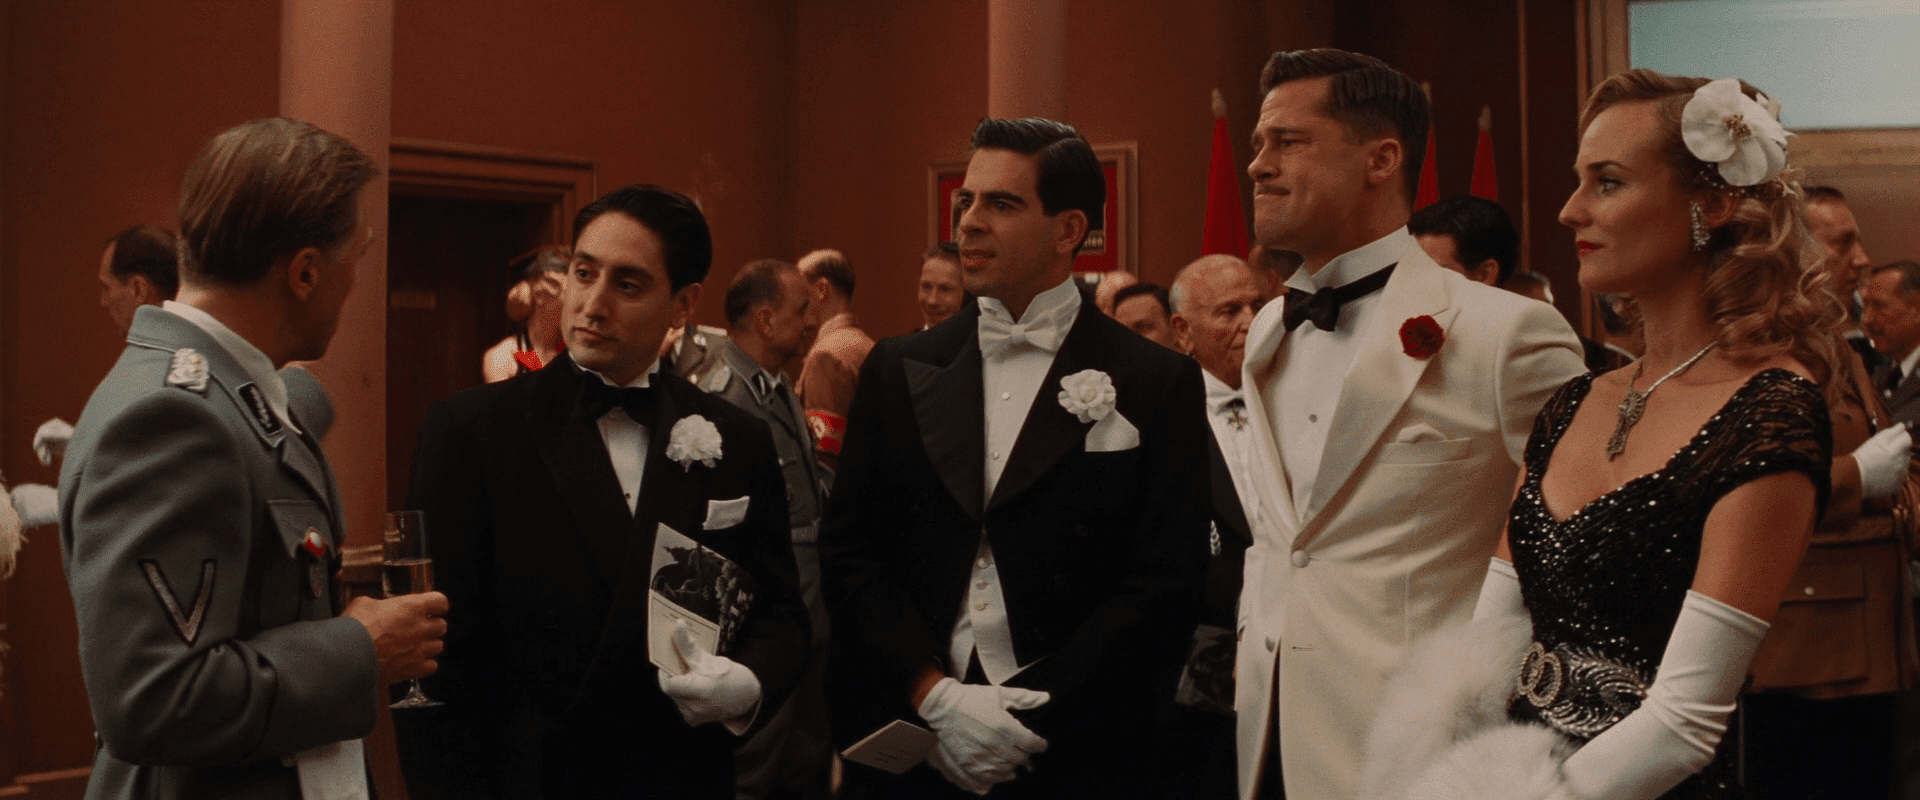 The Inglorious Basterds (2009)